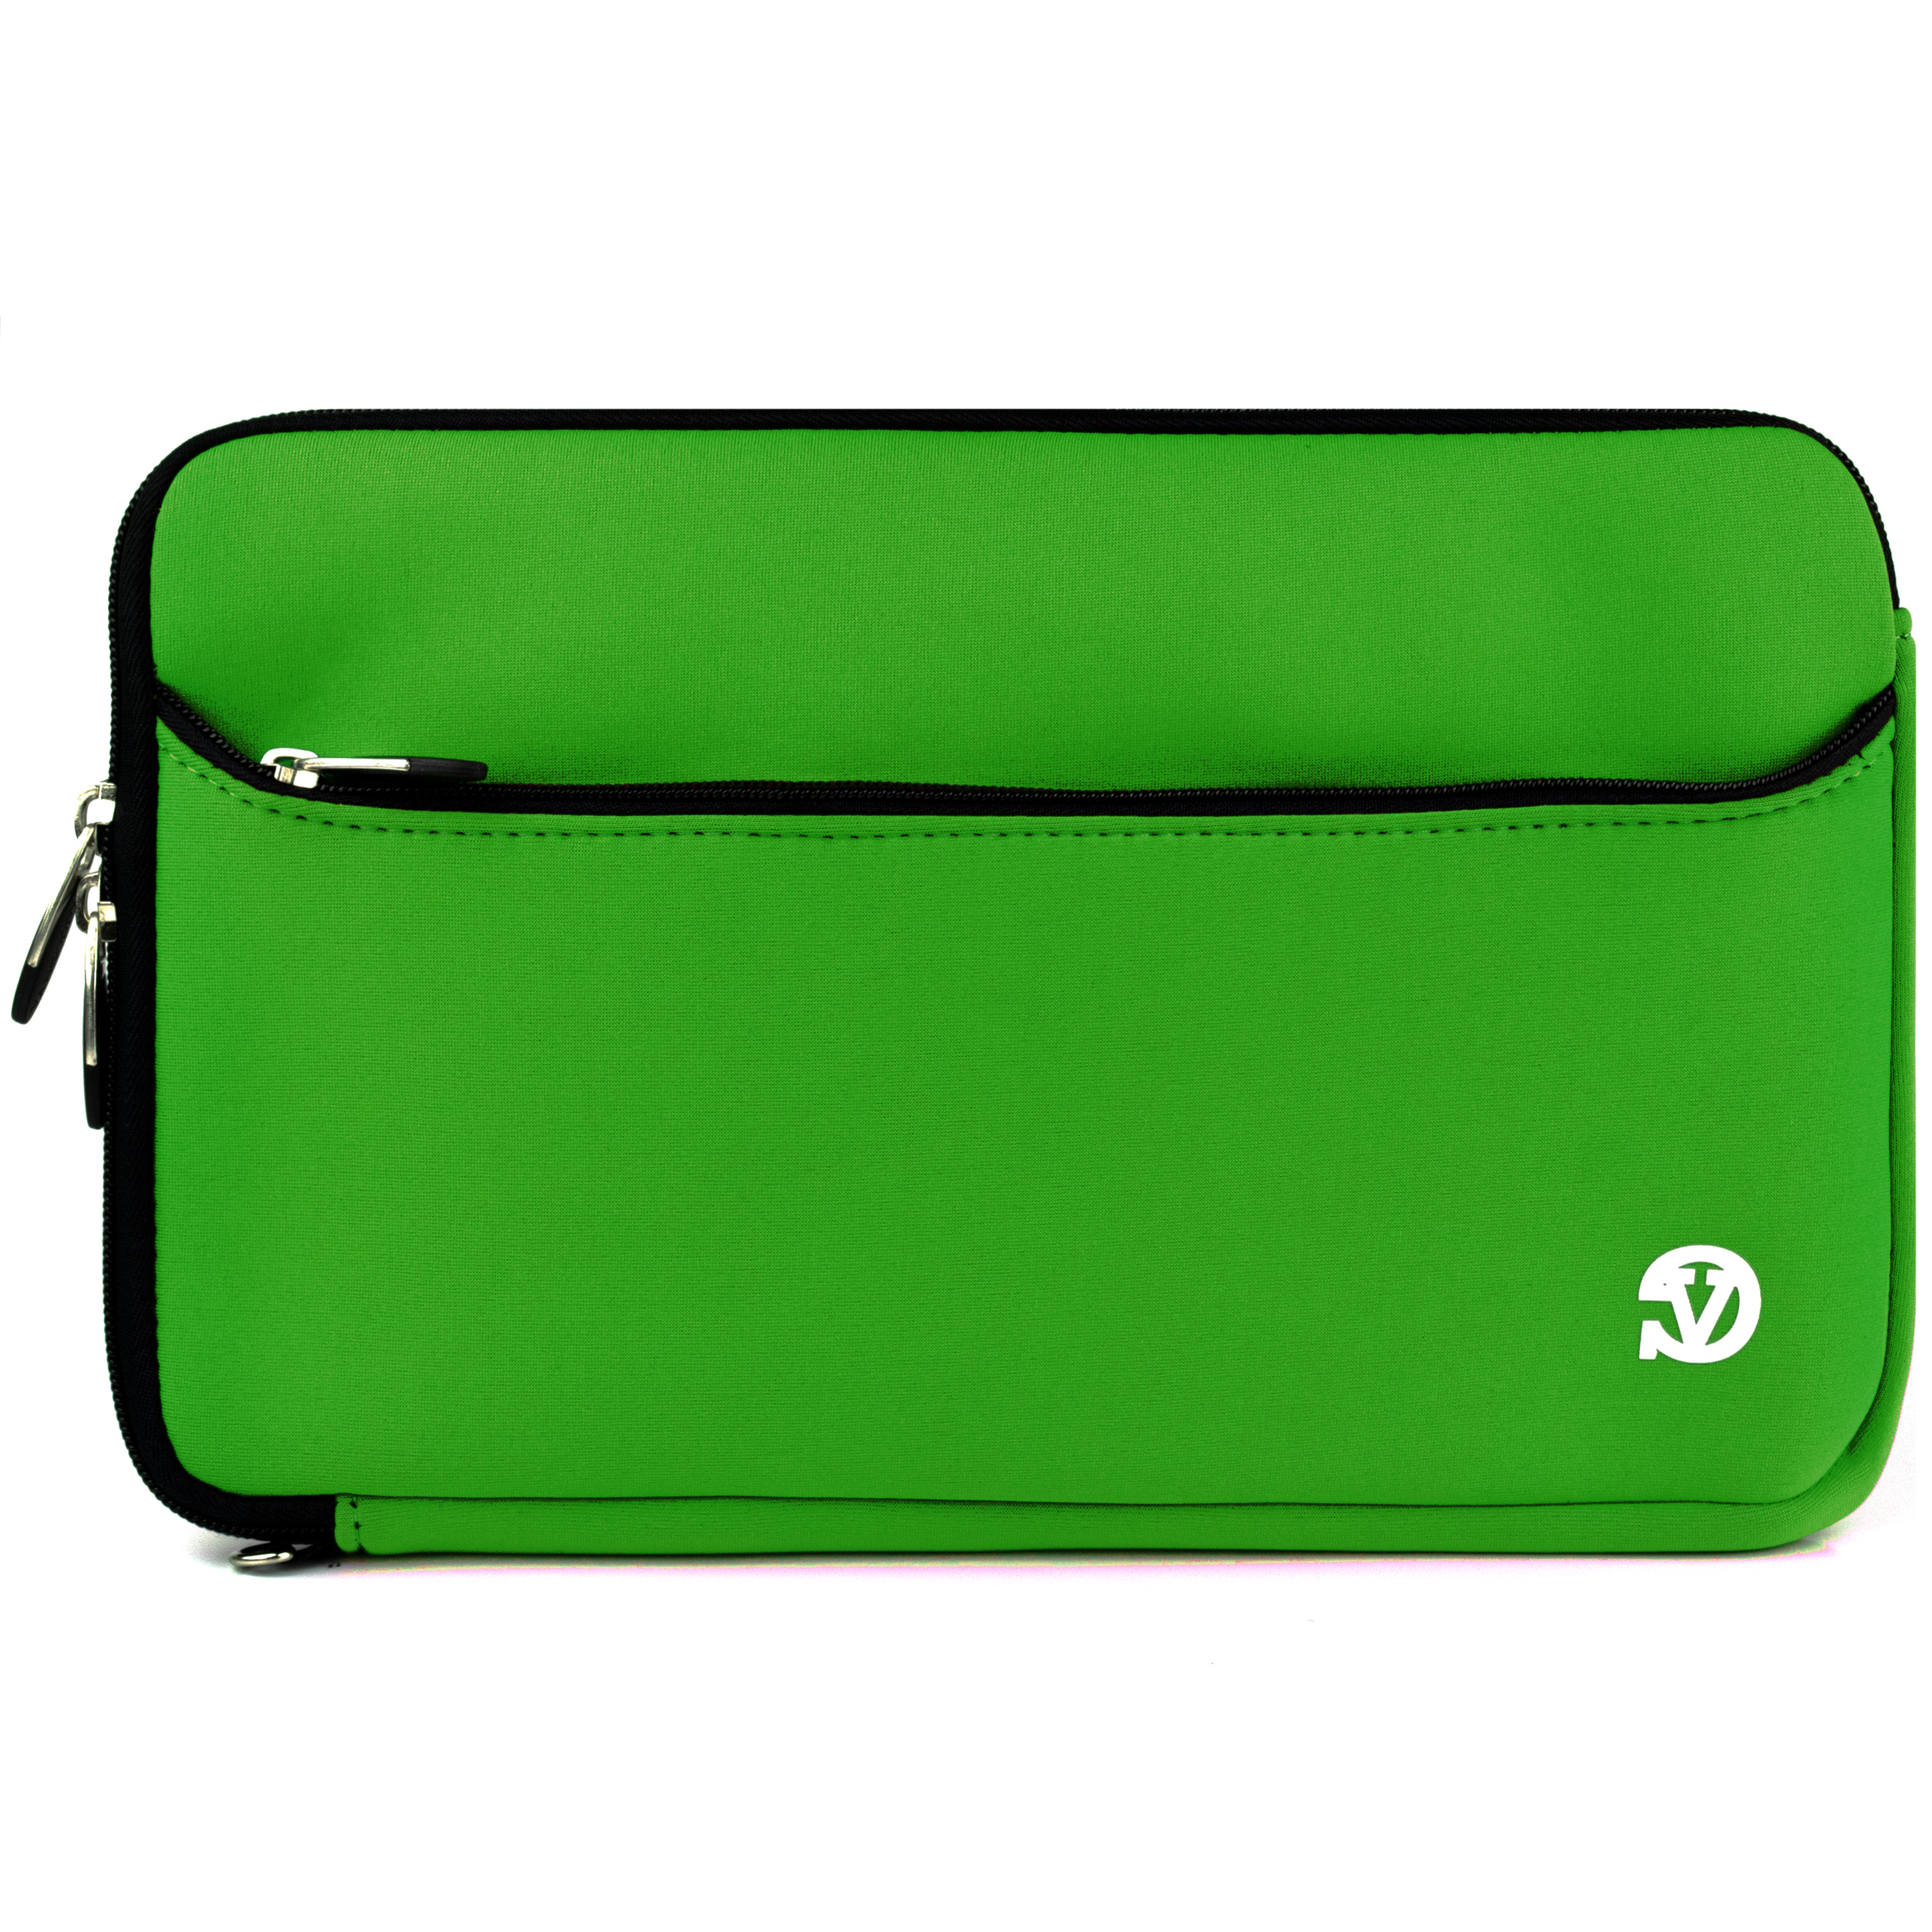 VANGODDY Neoprene Laptop / Notebook / Ultrabook Slim Compact Carrying Sleeve fits up to 15, 15.6 inch Devices [Assorted Colors]